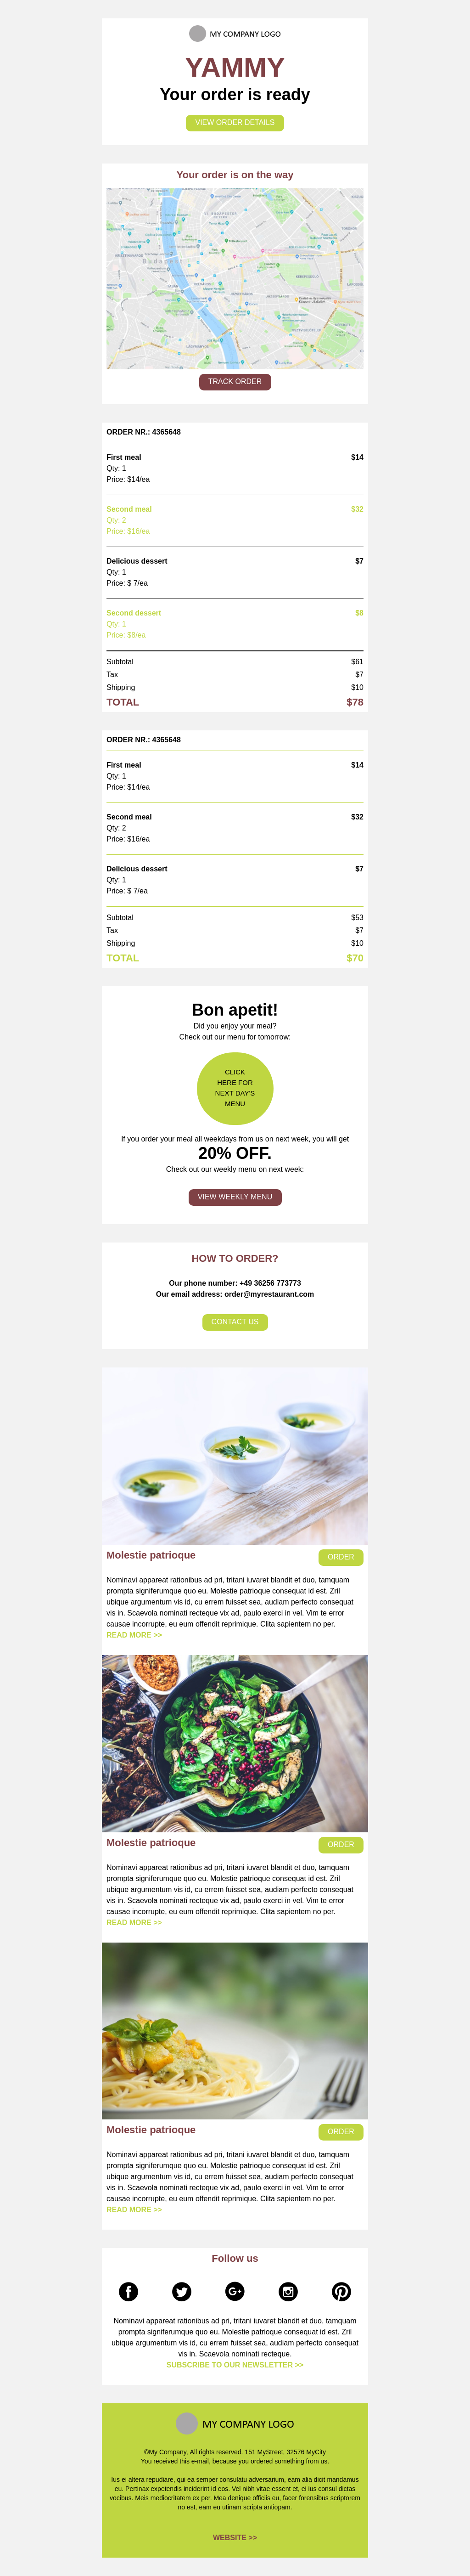 Food Delivery Order Confirmation Email Template